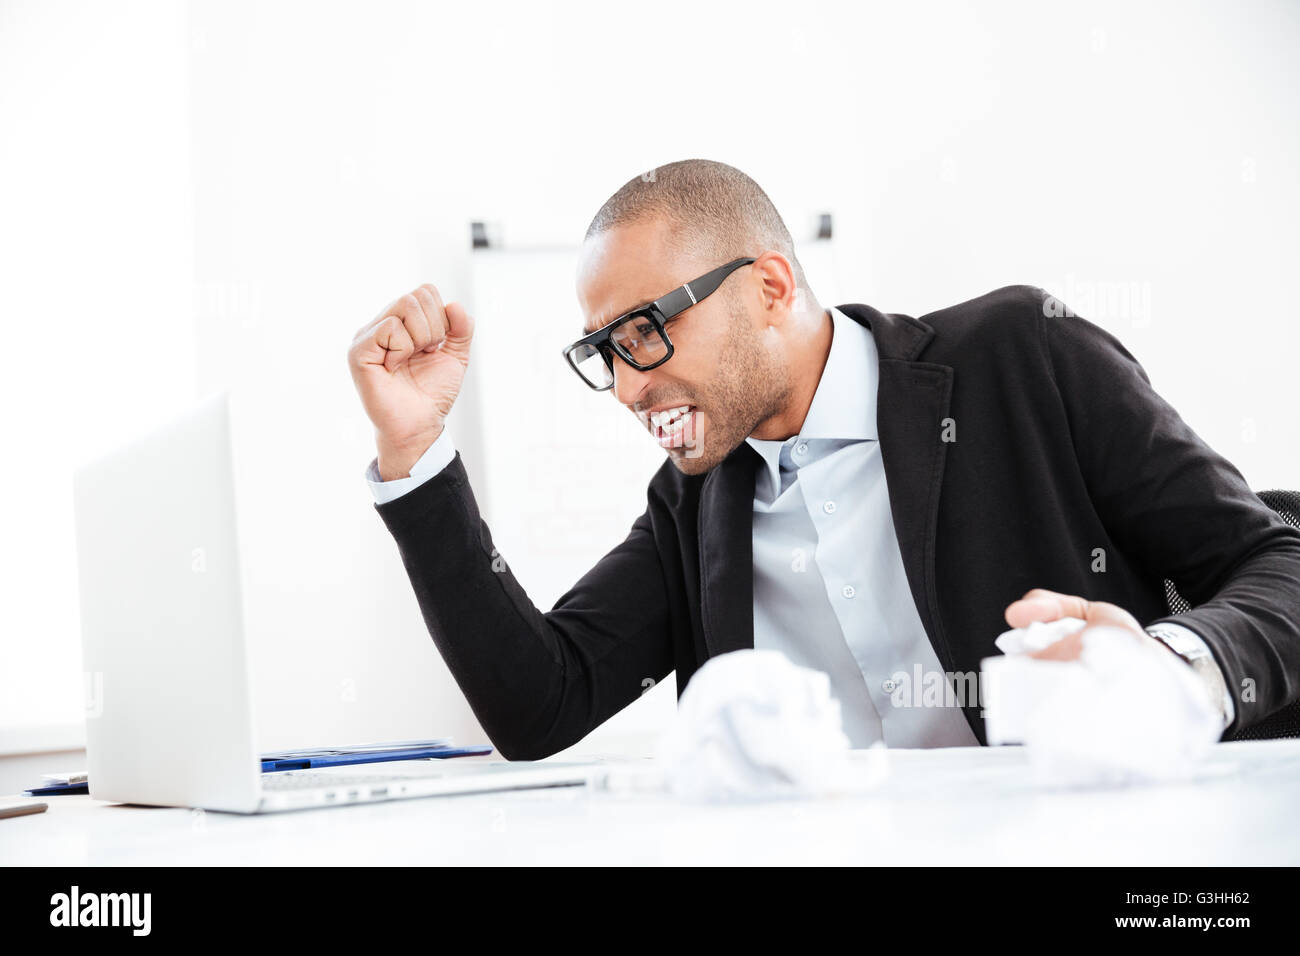 Angry nervous businessman working at office desk overloaded with paperwork - Stock Image